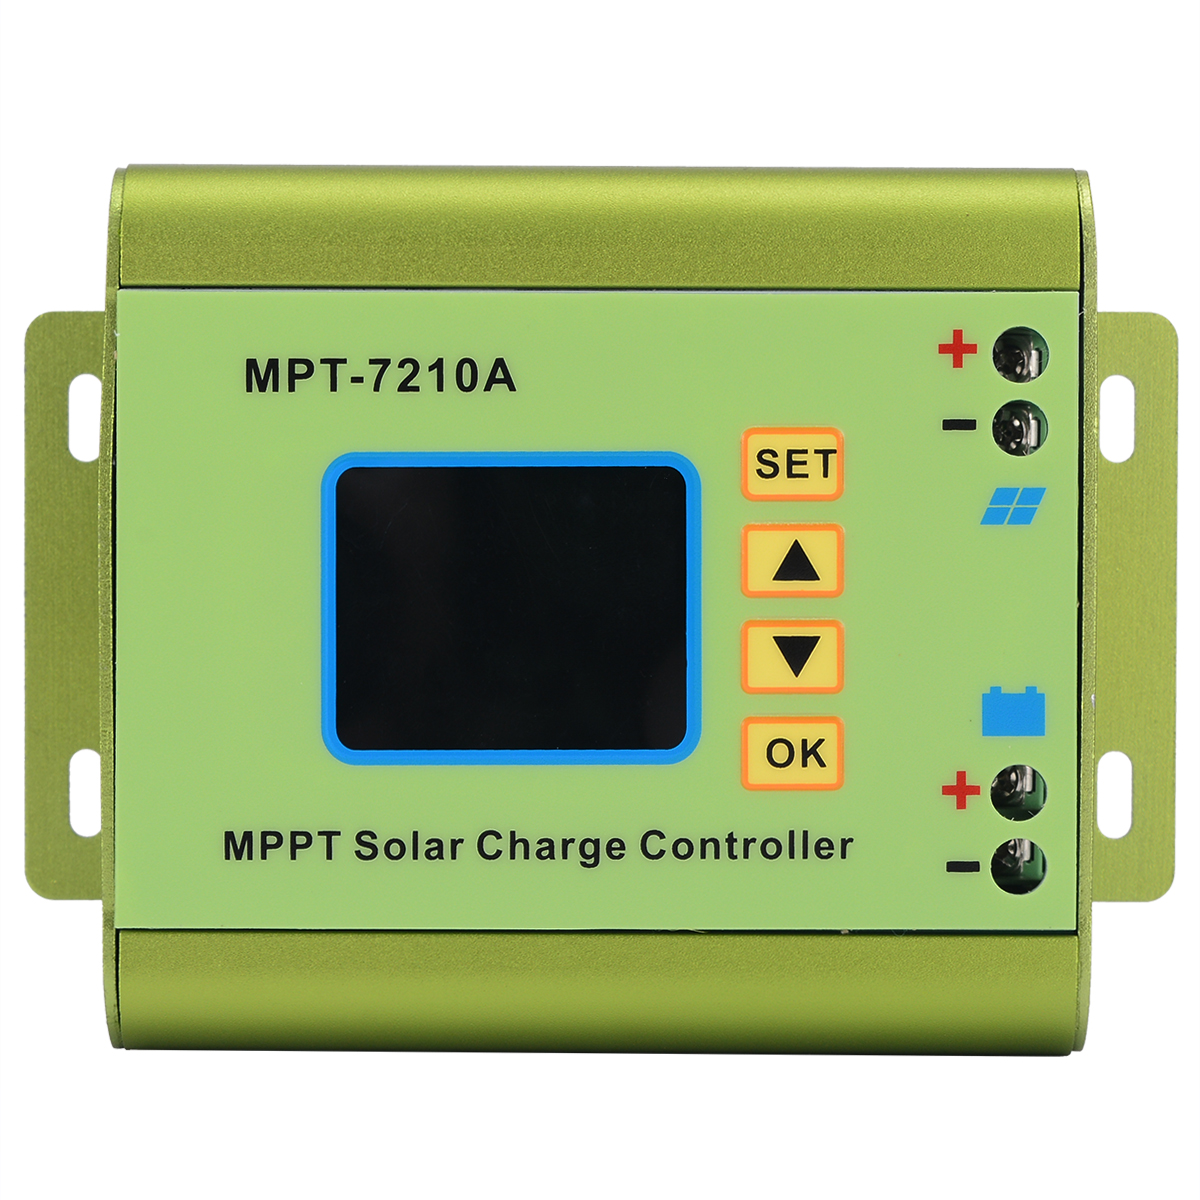 MPPT Solar Charge Controller MPPT and DC-DC LCD Display Solar Panel Charge Controller 24/36/48/60/72V Battery Pack System цены онлайн